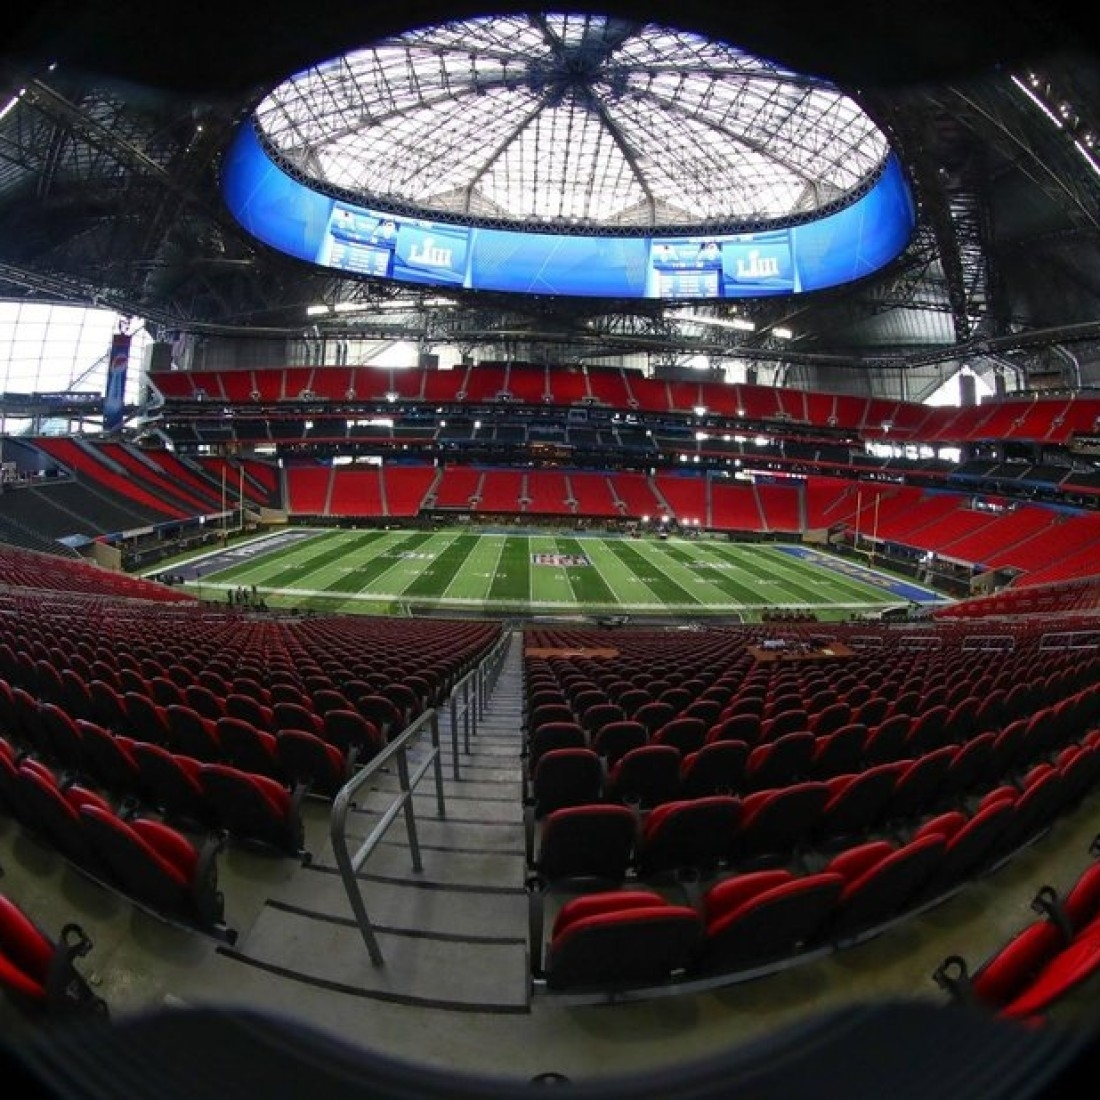 New England Patriots Gegen Los Angeles Rams: Nfl Super Bowl intended for Super Bowl 2019 Tickets